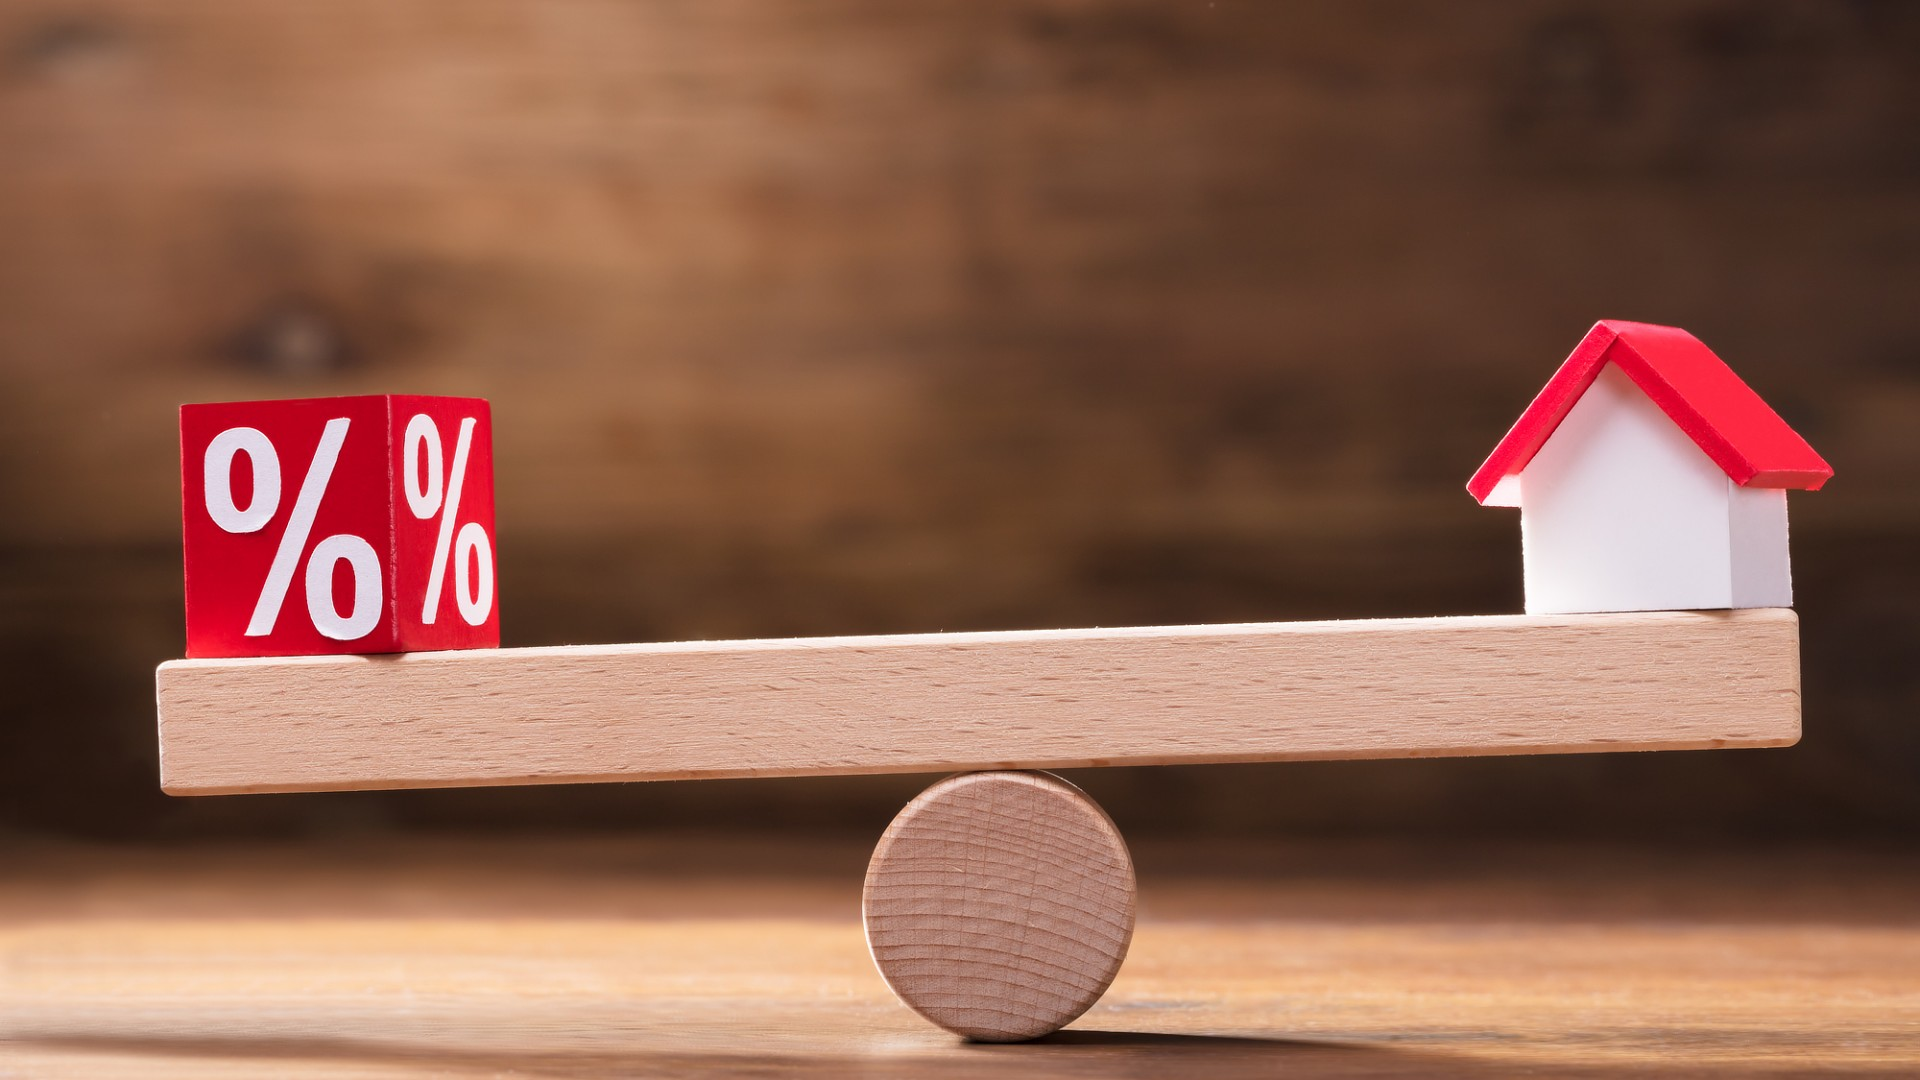 Fixed vs Variable Interest Rates — What's Best for Me?